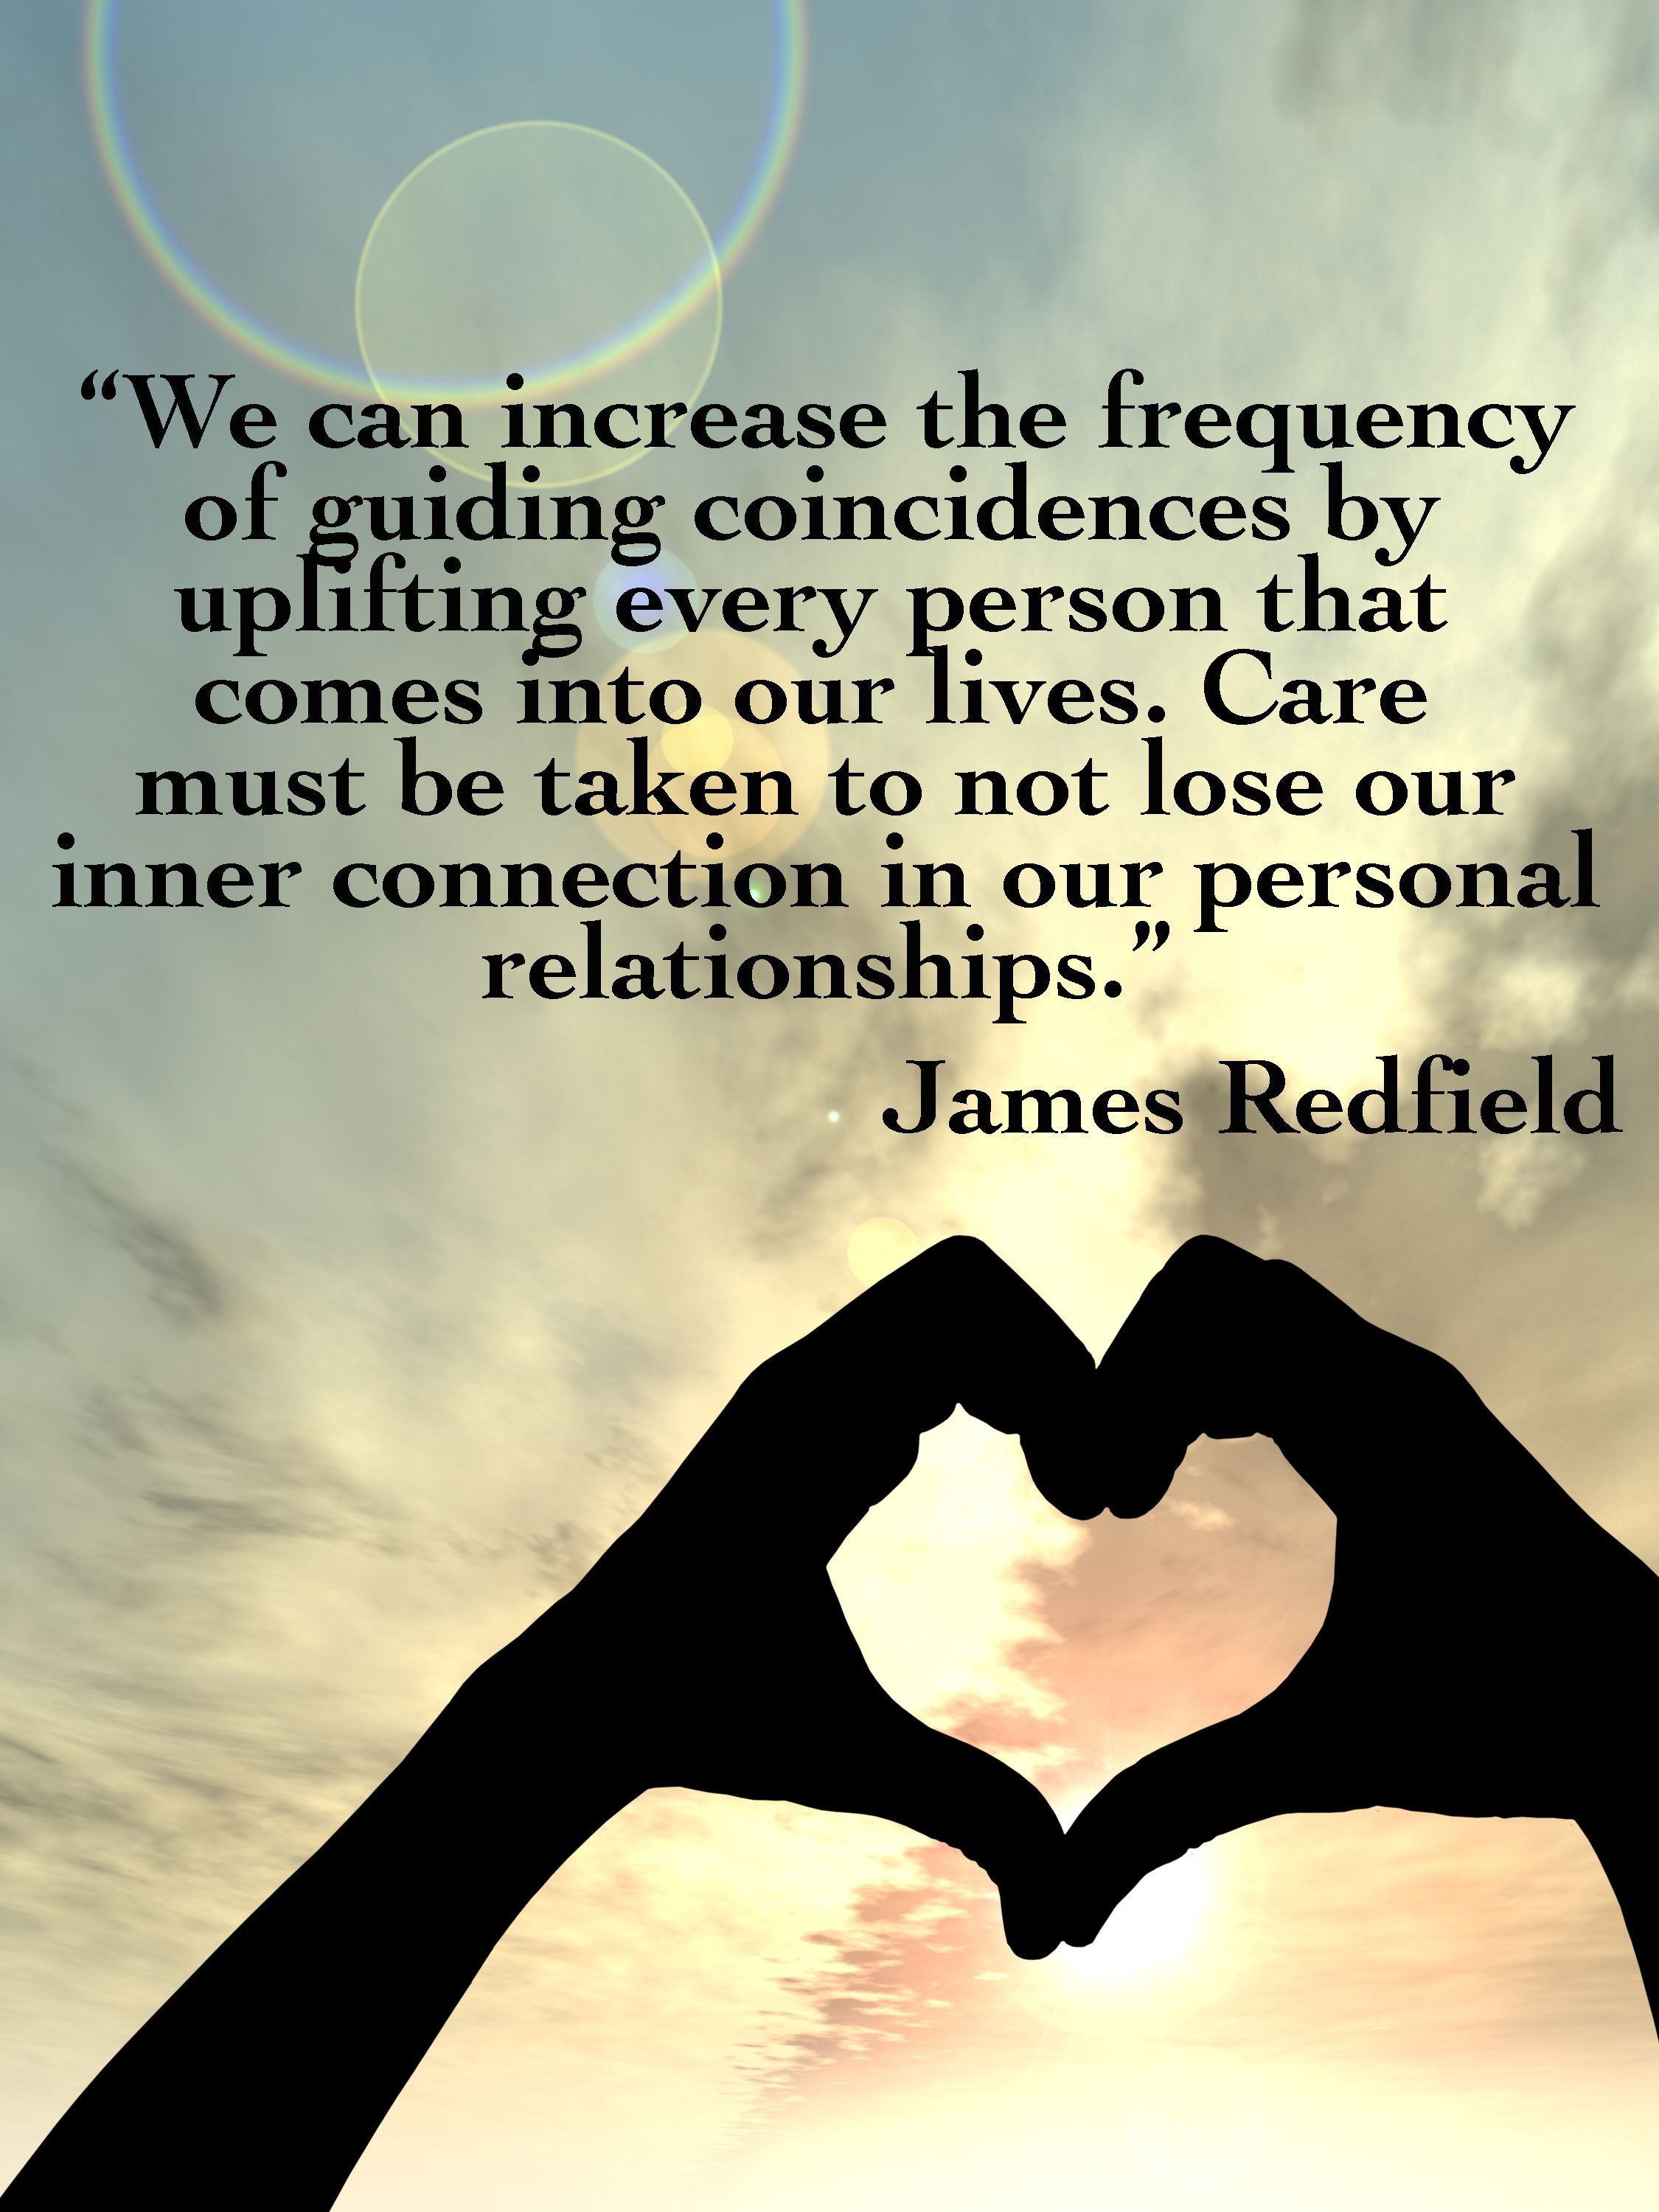 Spiritual Quotes On Love Brilliant Inspirational And Spiritual Quotesjames Redfield  Celestine